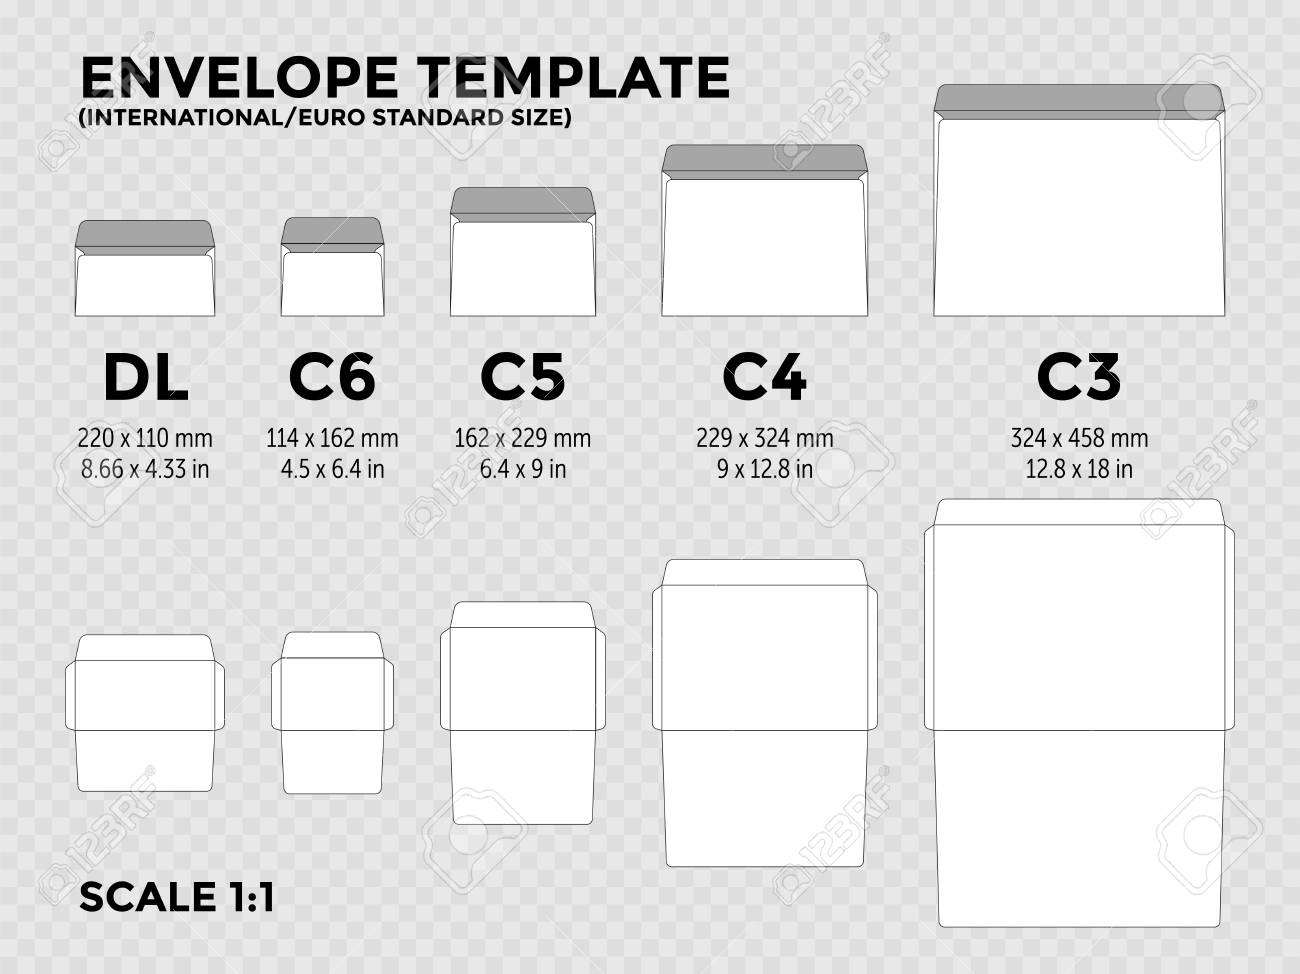 Envelope template with international, euro standard sizes c6, c5, c4, c3 for folded a4, a5 paper with cut lines. Vector illustration - 109808443